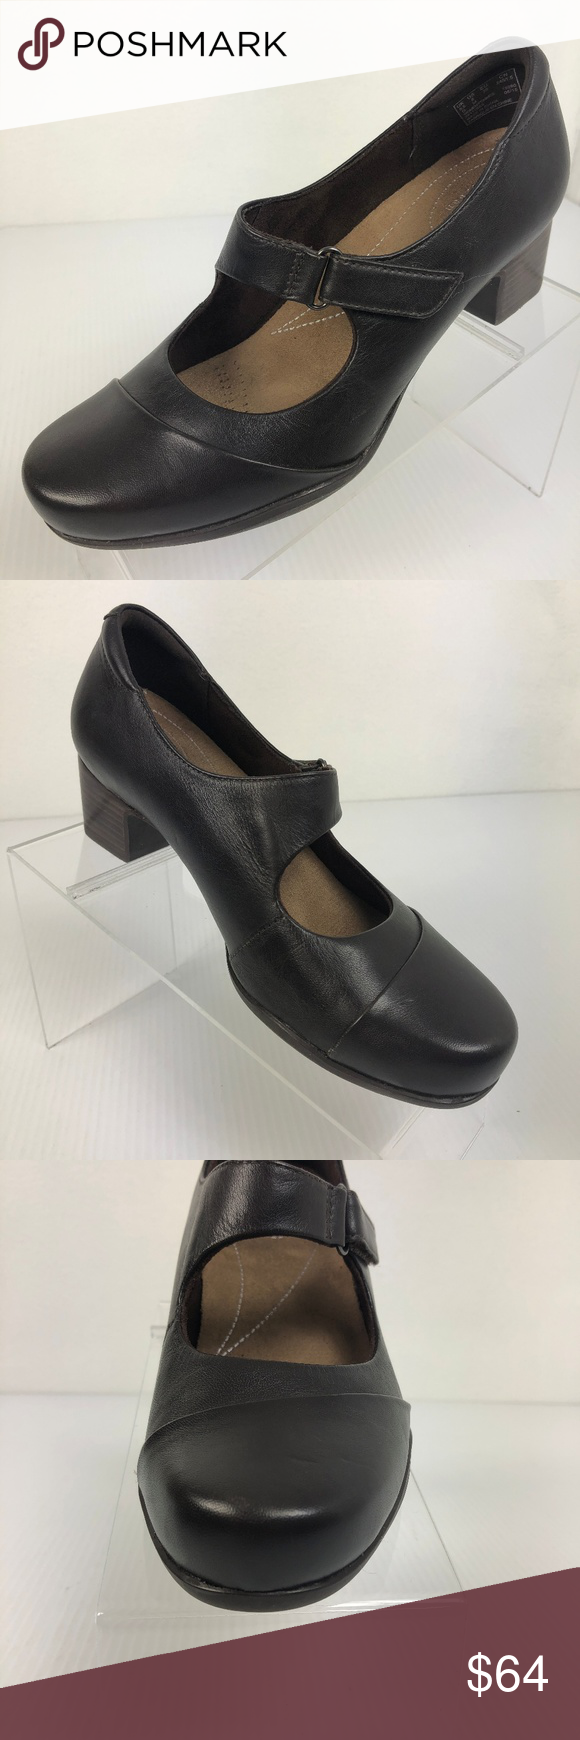 8b97990a83 Clarks Artisan Mary Jane Pumps Womens 8 M Clarks Artisan Black Leather Mary  Jane Pumps Rosalyn Wren Shoes Heels Brand New, Store Displays!